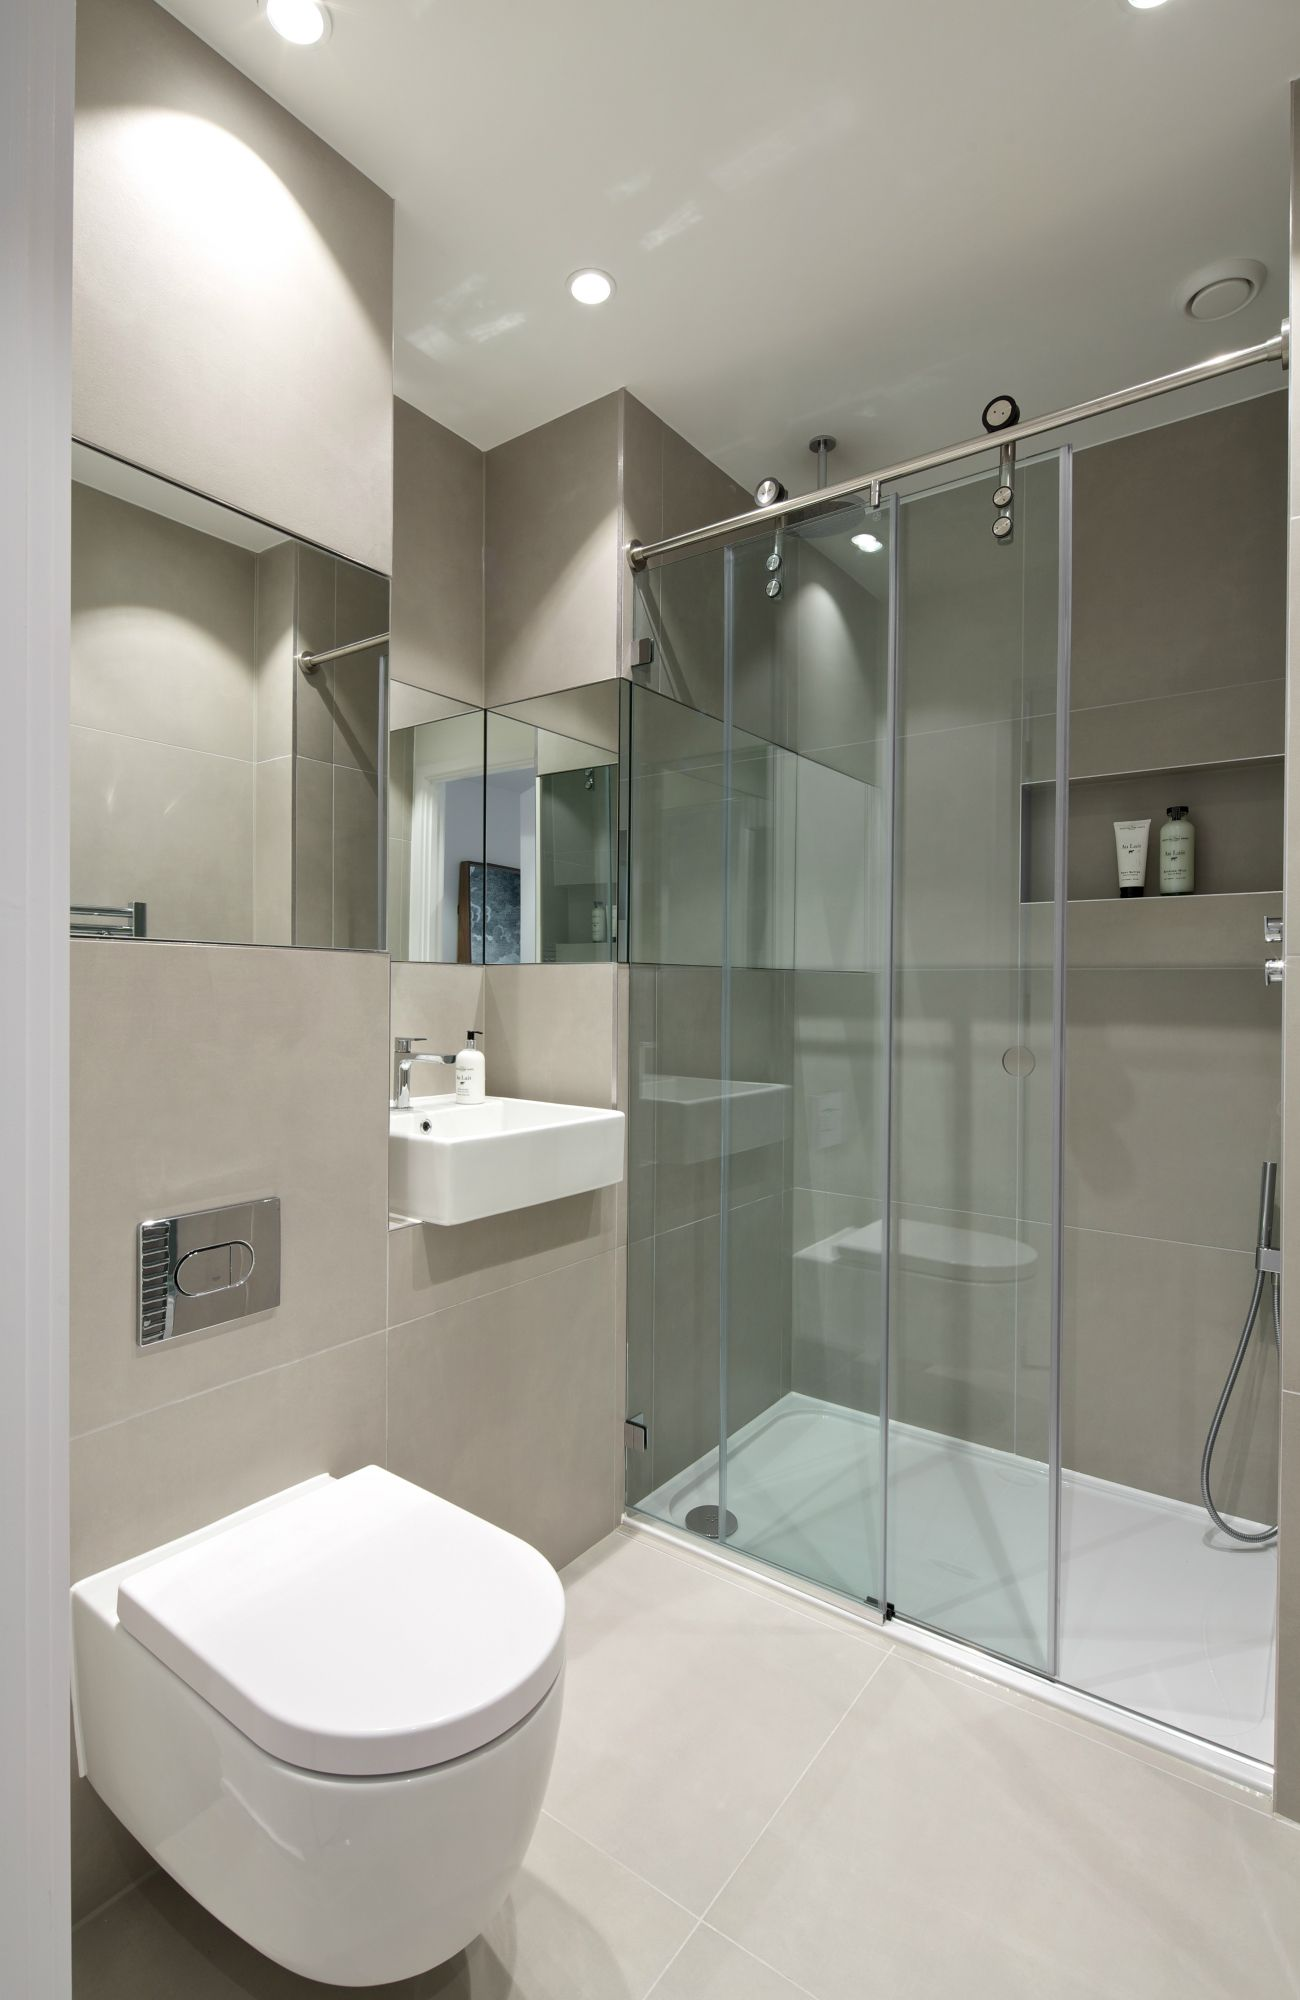 30 facts shower room ideas everyone thinks are true - Bathroom tile ideas for small bathrooms ...